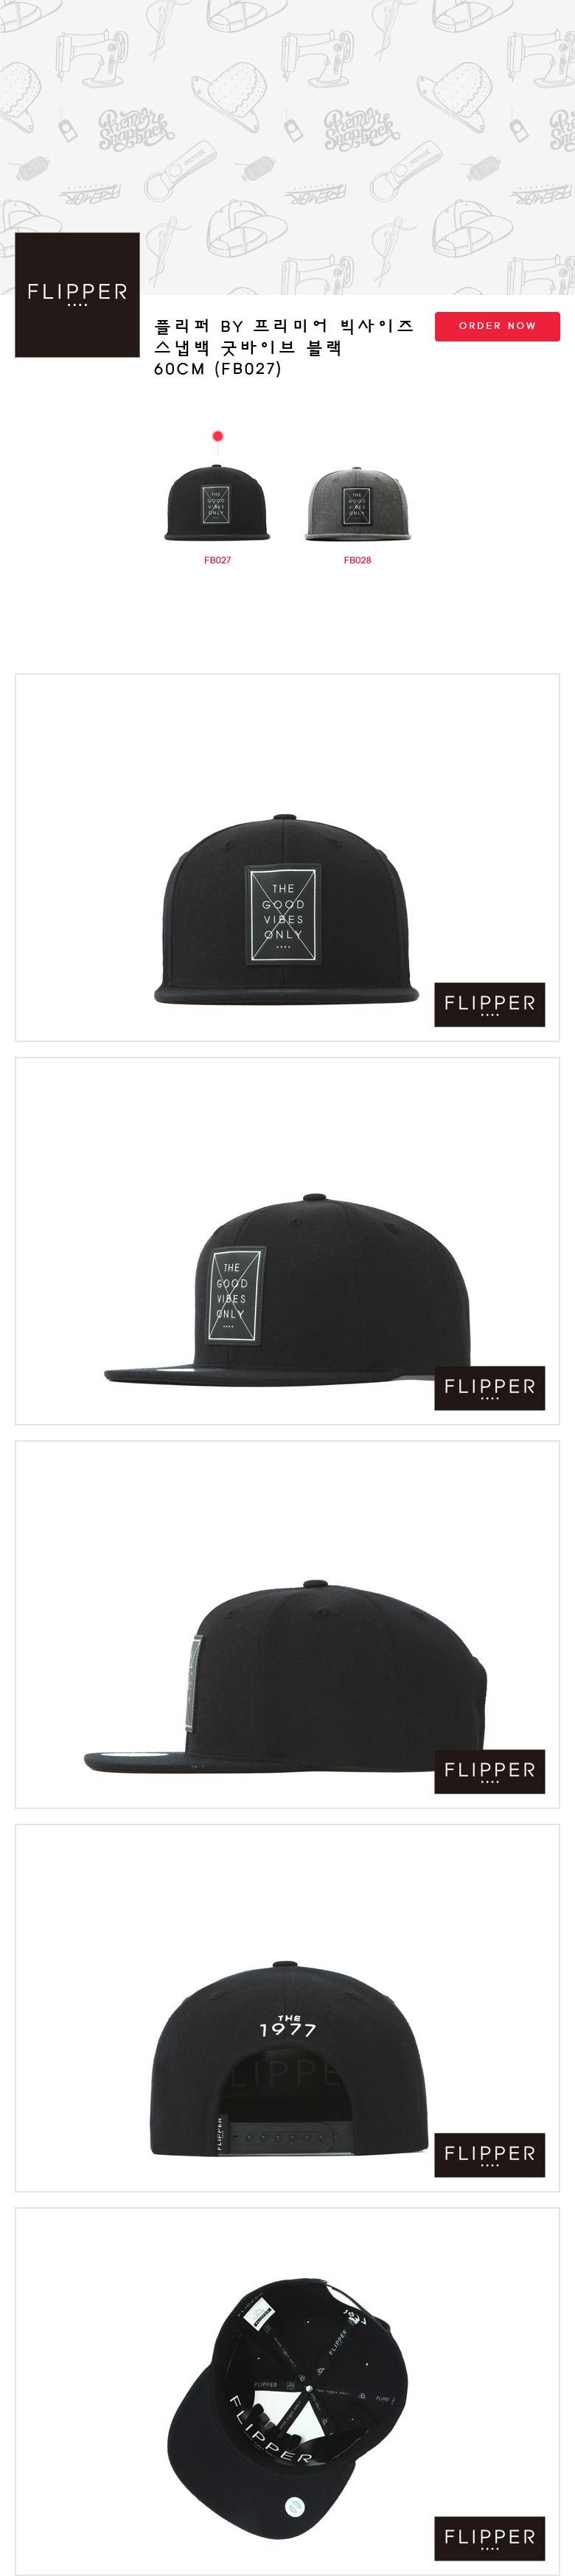 [ PREMIER ] [Premier] Flipper Big Size Snapback Good Vibes Black 60CM (FB027)